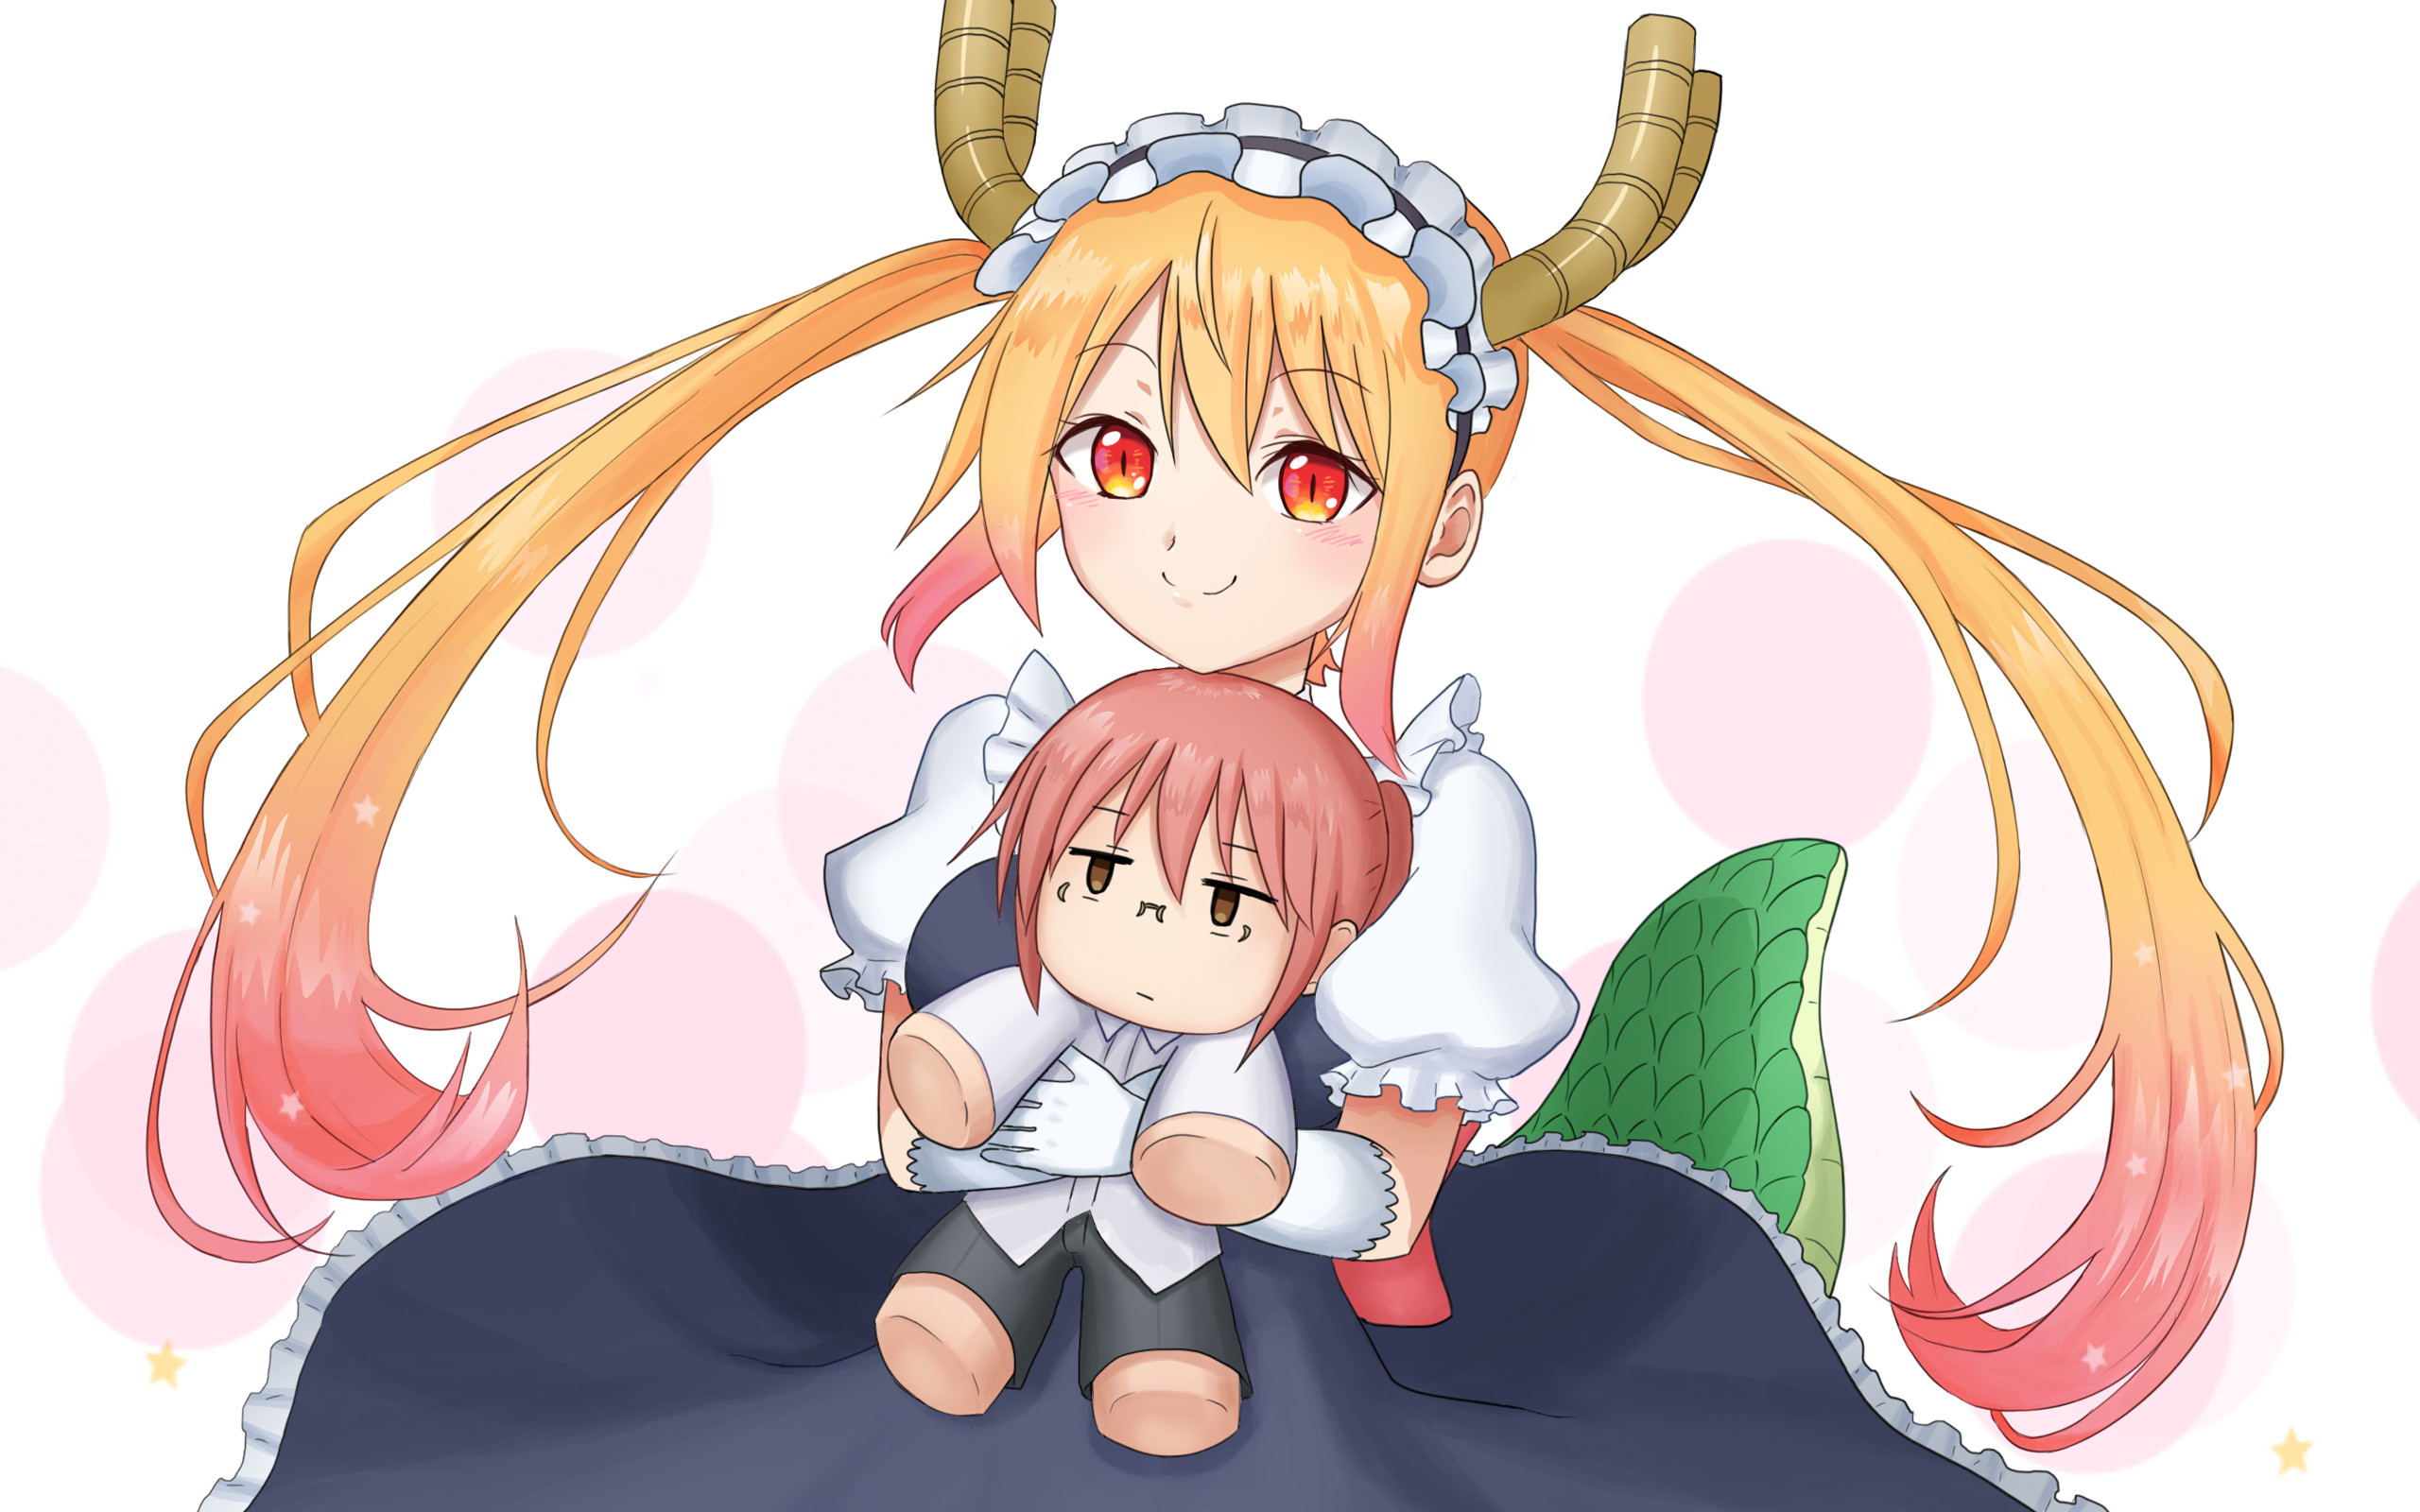 2560x1600 Anime - Miss Kobayashi's Dragon Maid Tohru (Miss Kobayashi's Dragon Maid)  Wallpaper